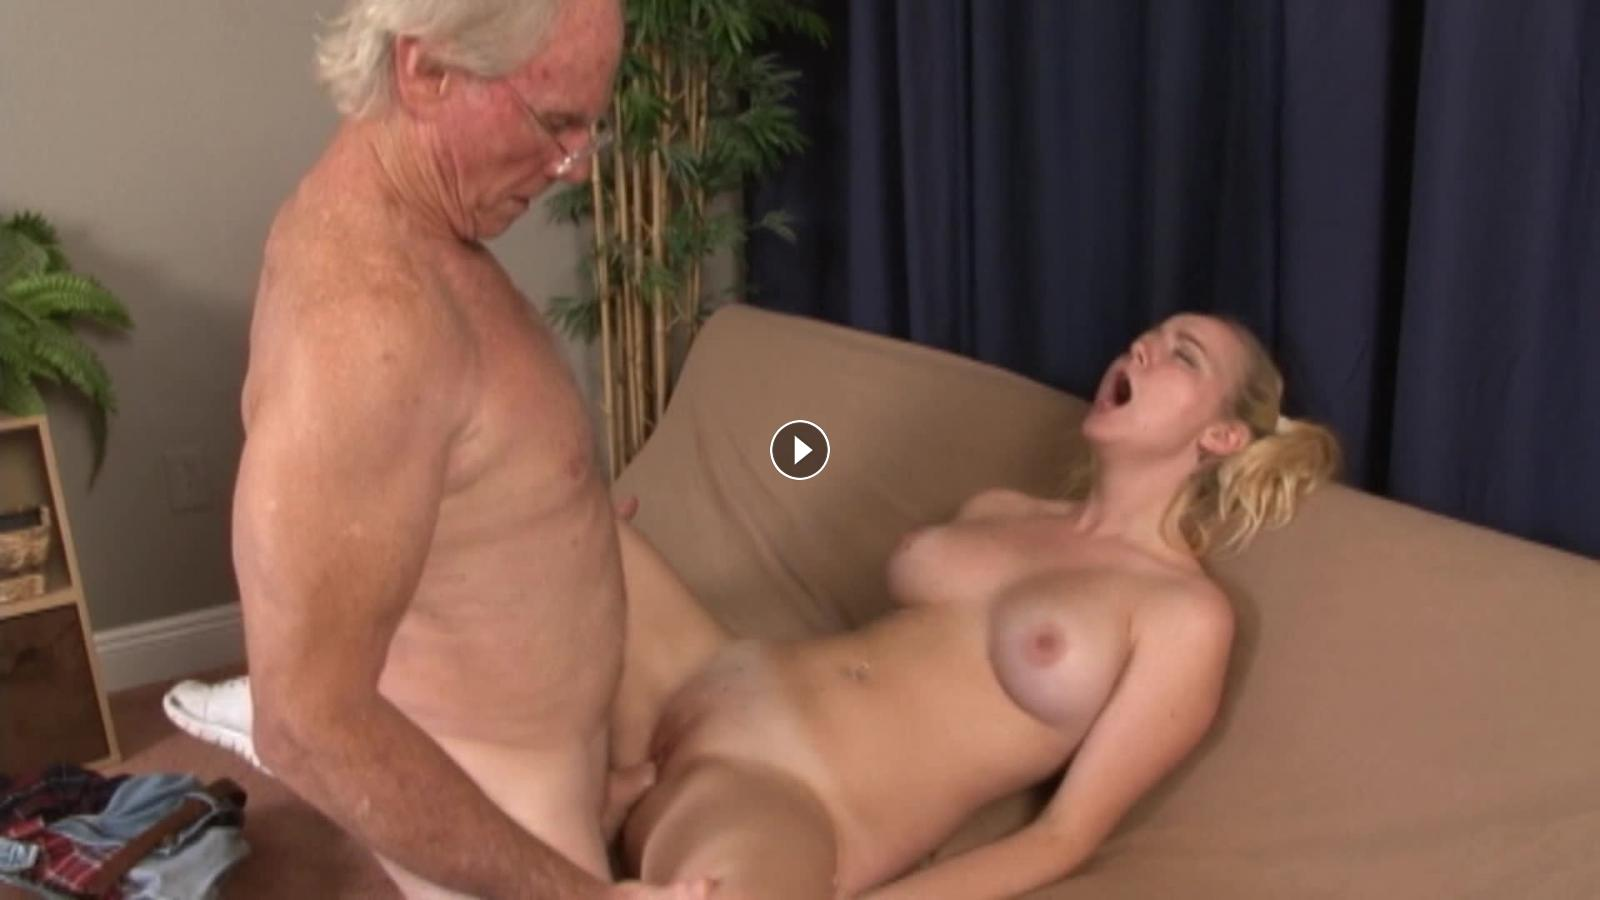 Amateur Sex Old Man And Old Women In Bed